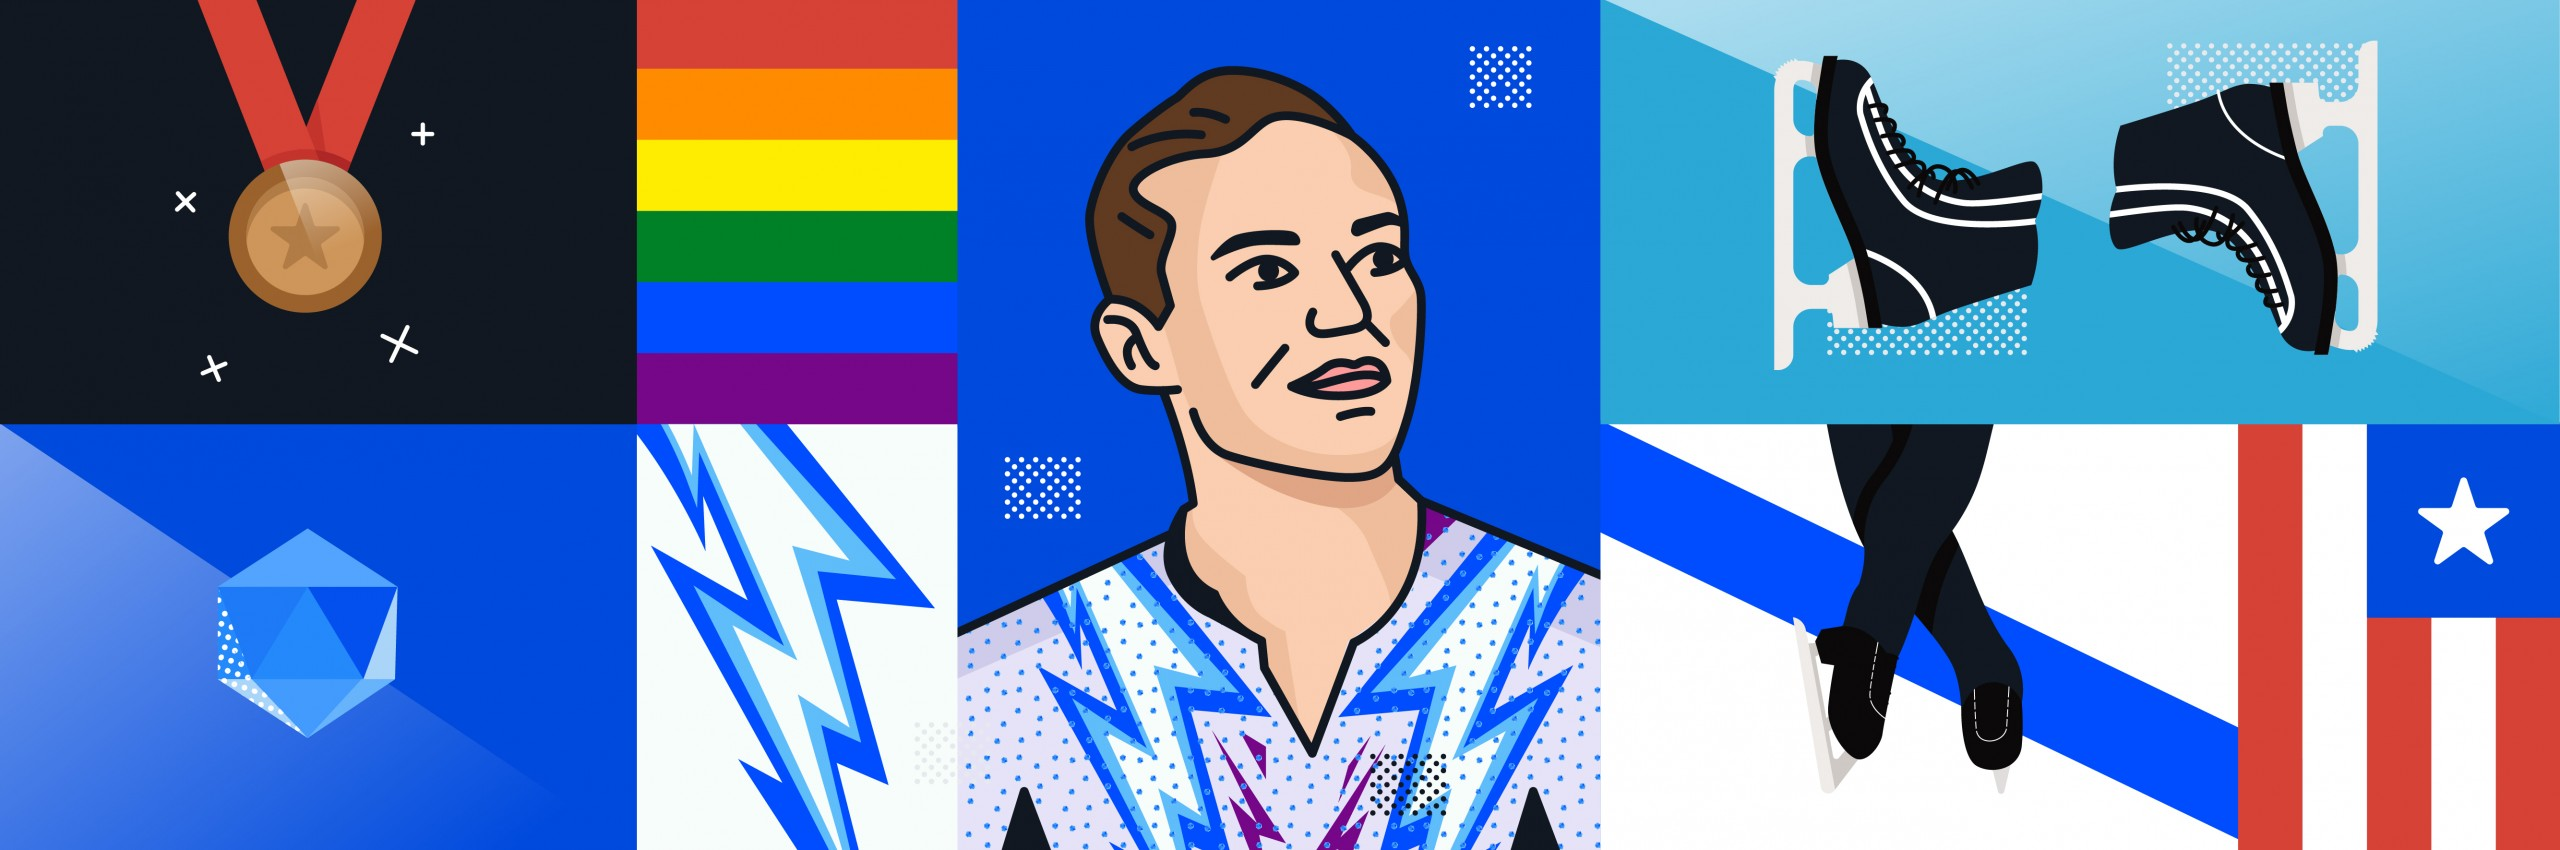 Illustration of Adam Rippon with skates and flags.